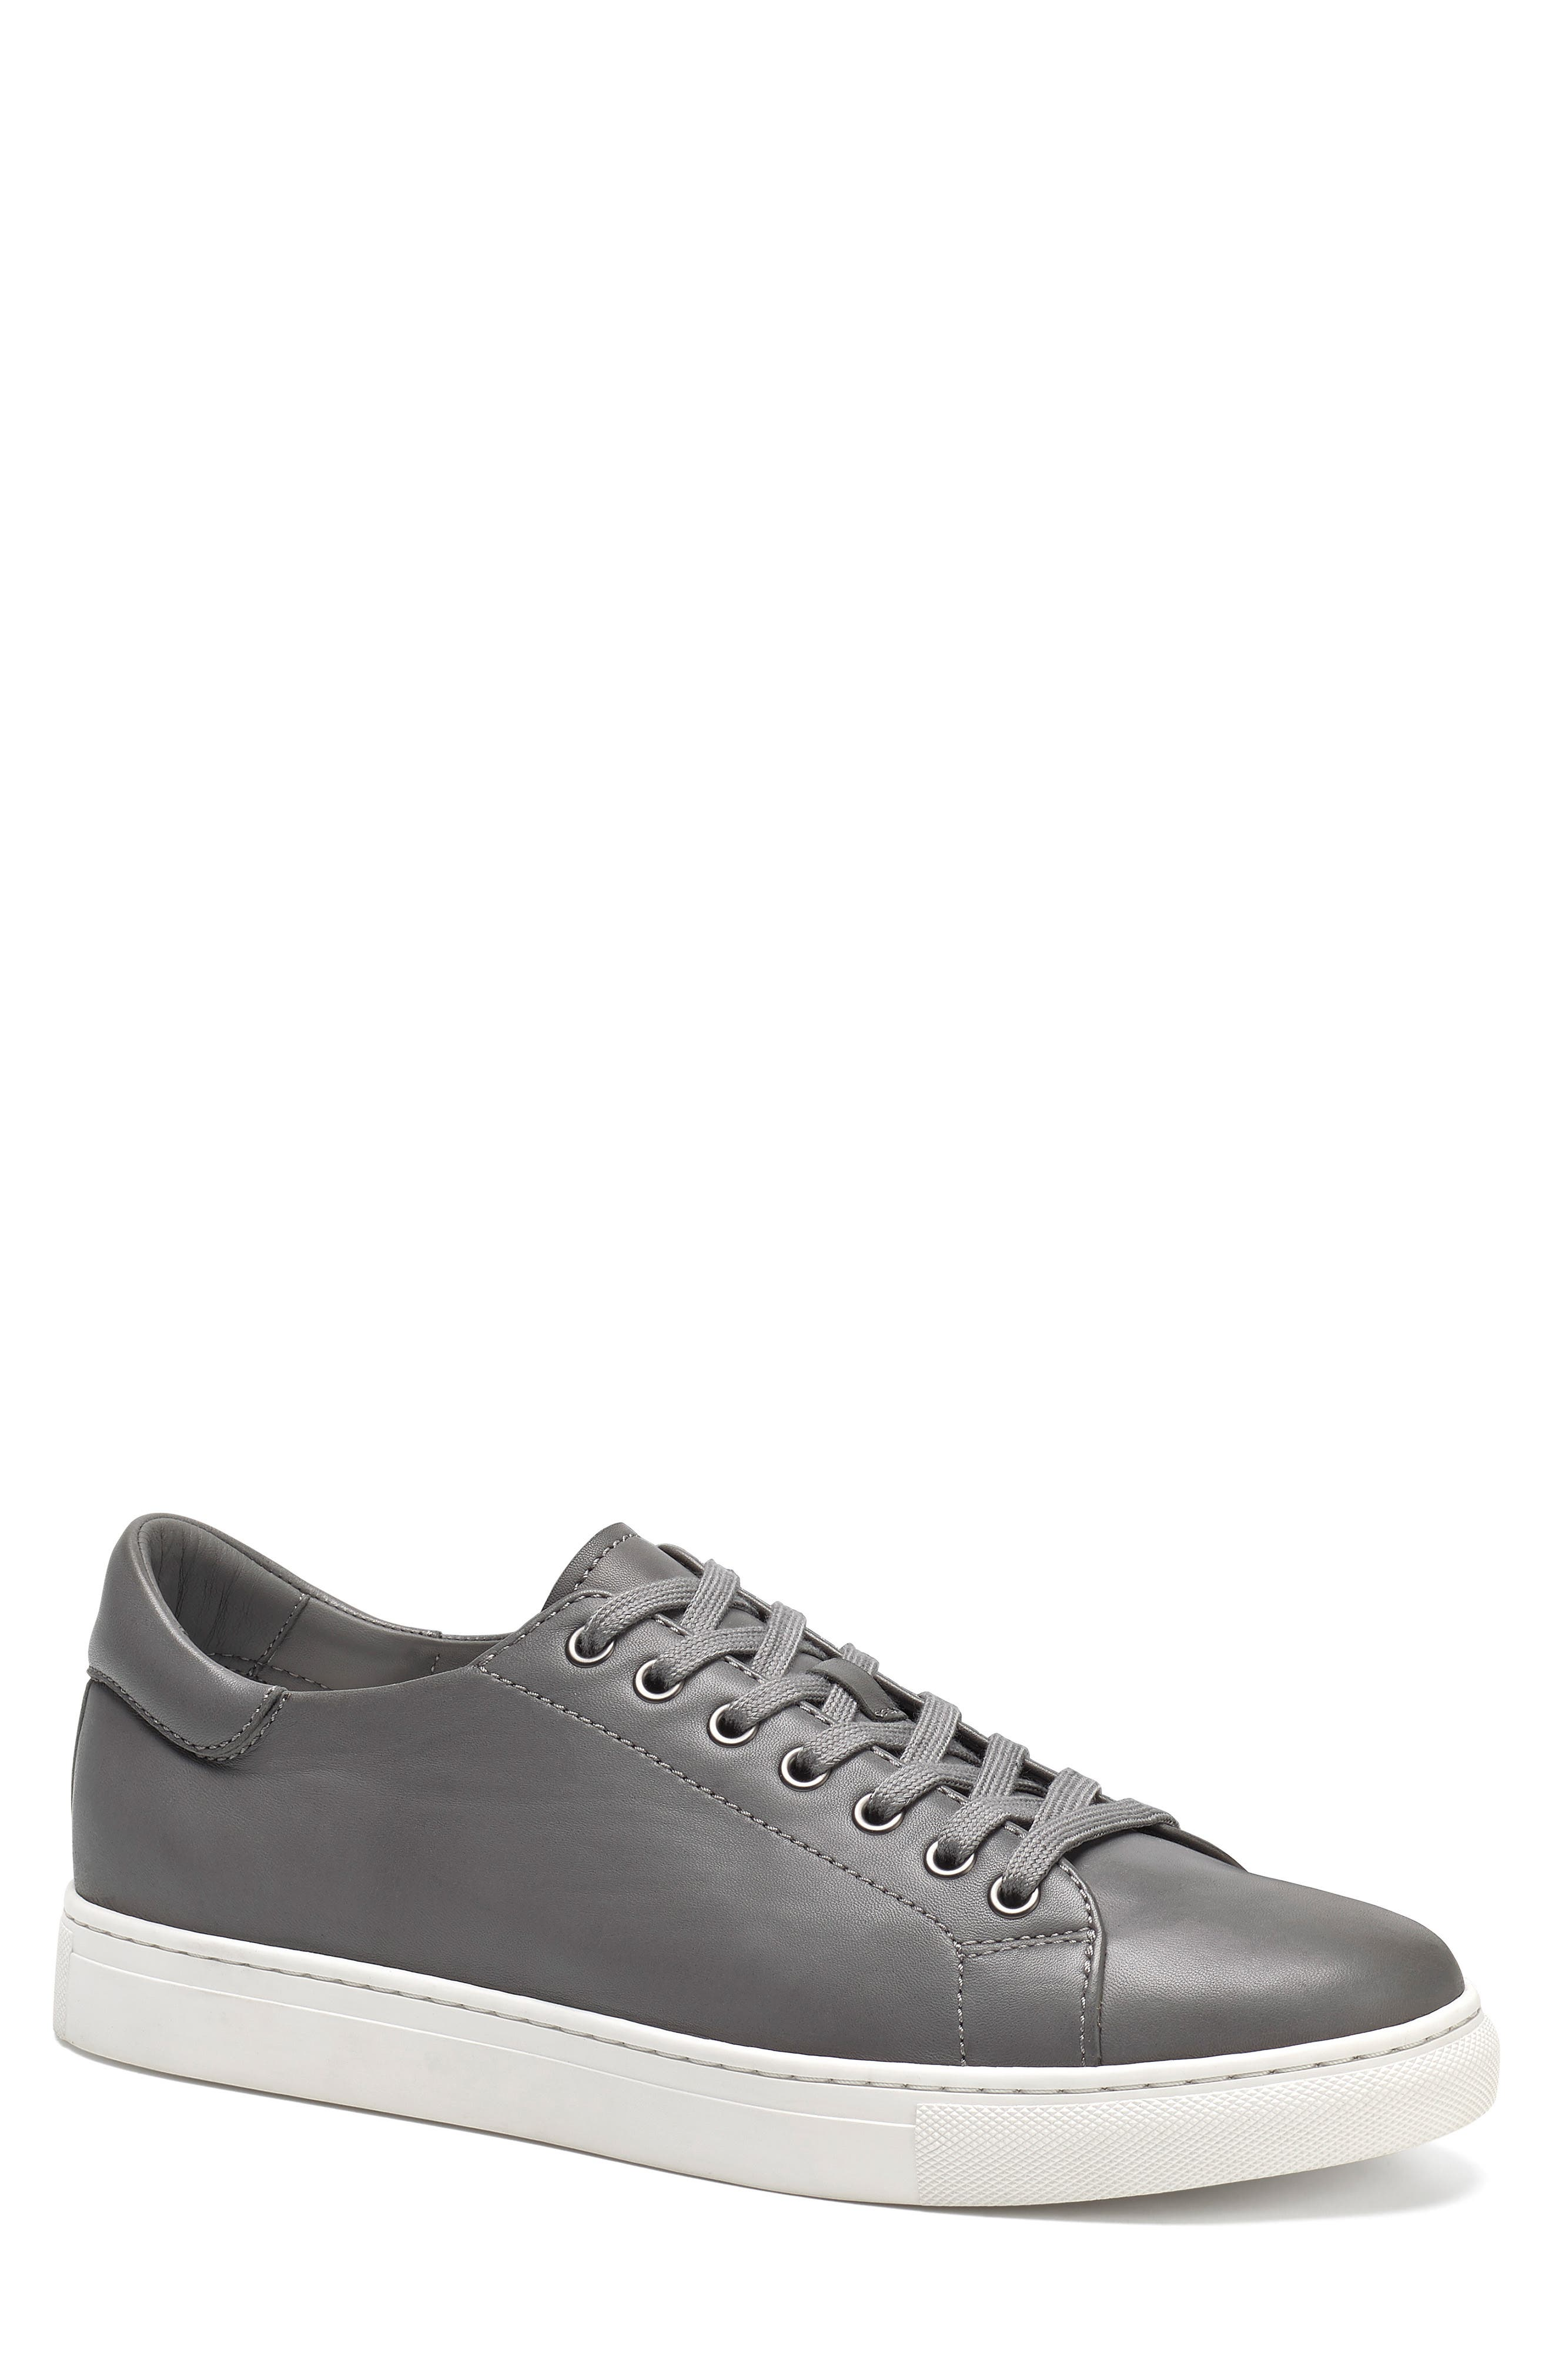 Top-notch Horween Chromexcel pull-up leather defines a classic sneaker with a molded, cushioned footbed for superior support. Style Name: Trask Alder Sneaker (Men). Style Number: 5870646. Available in stores.